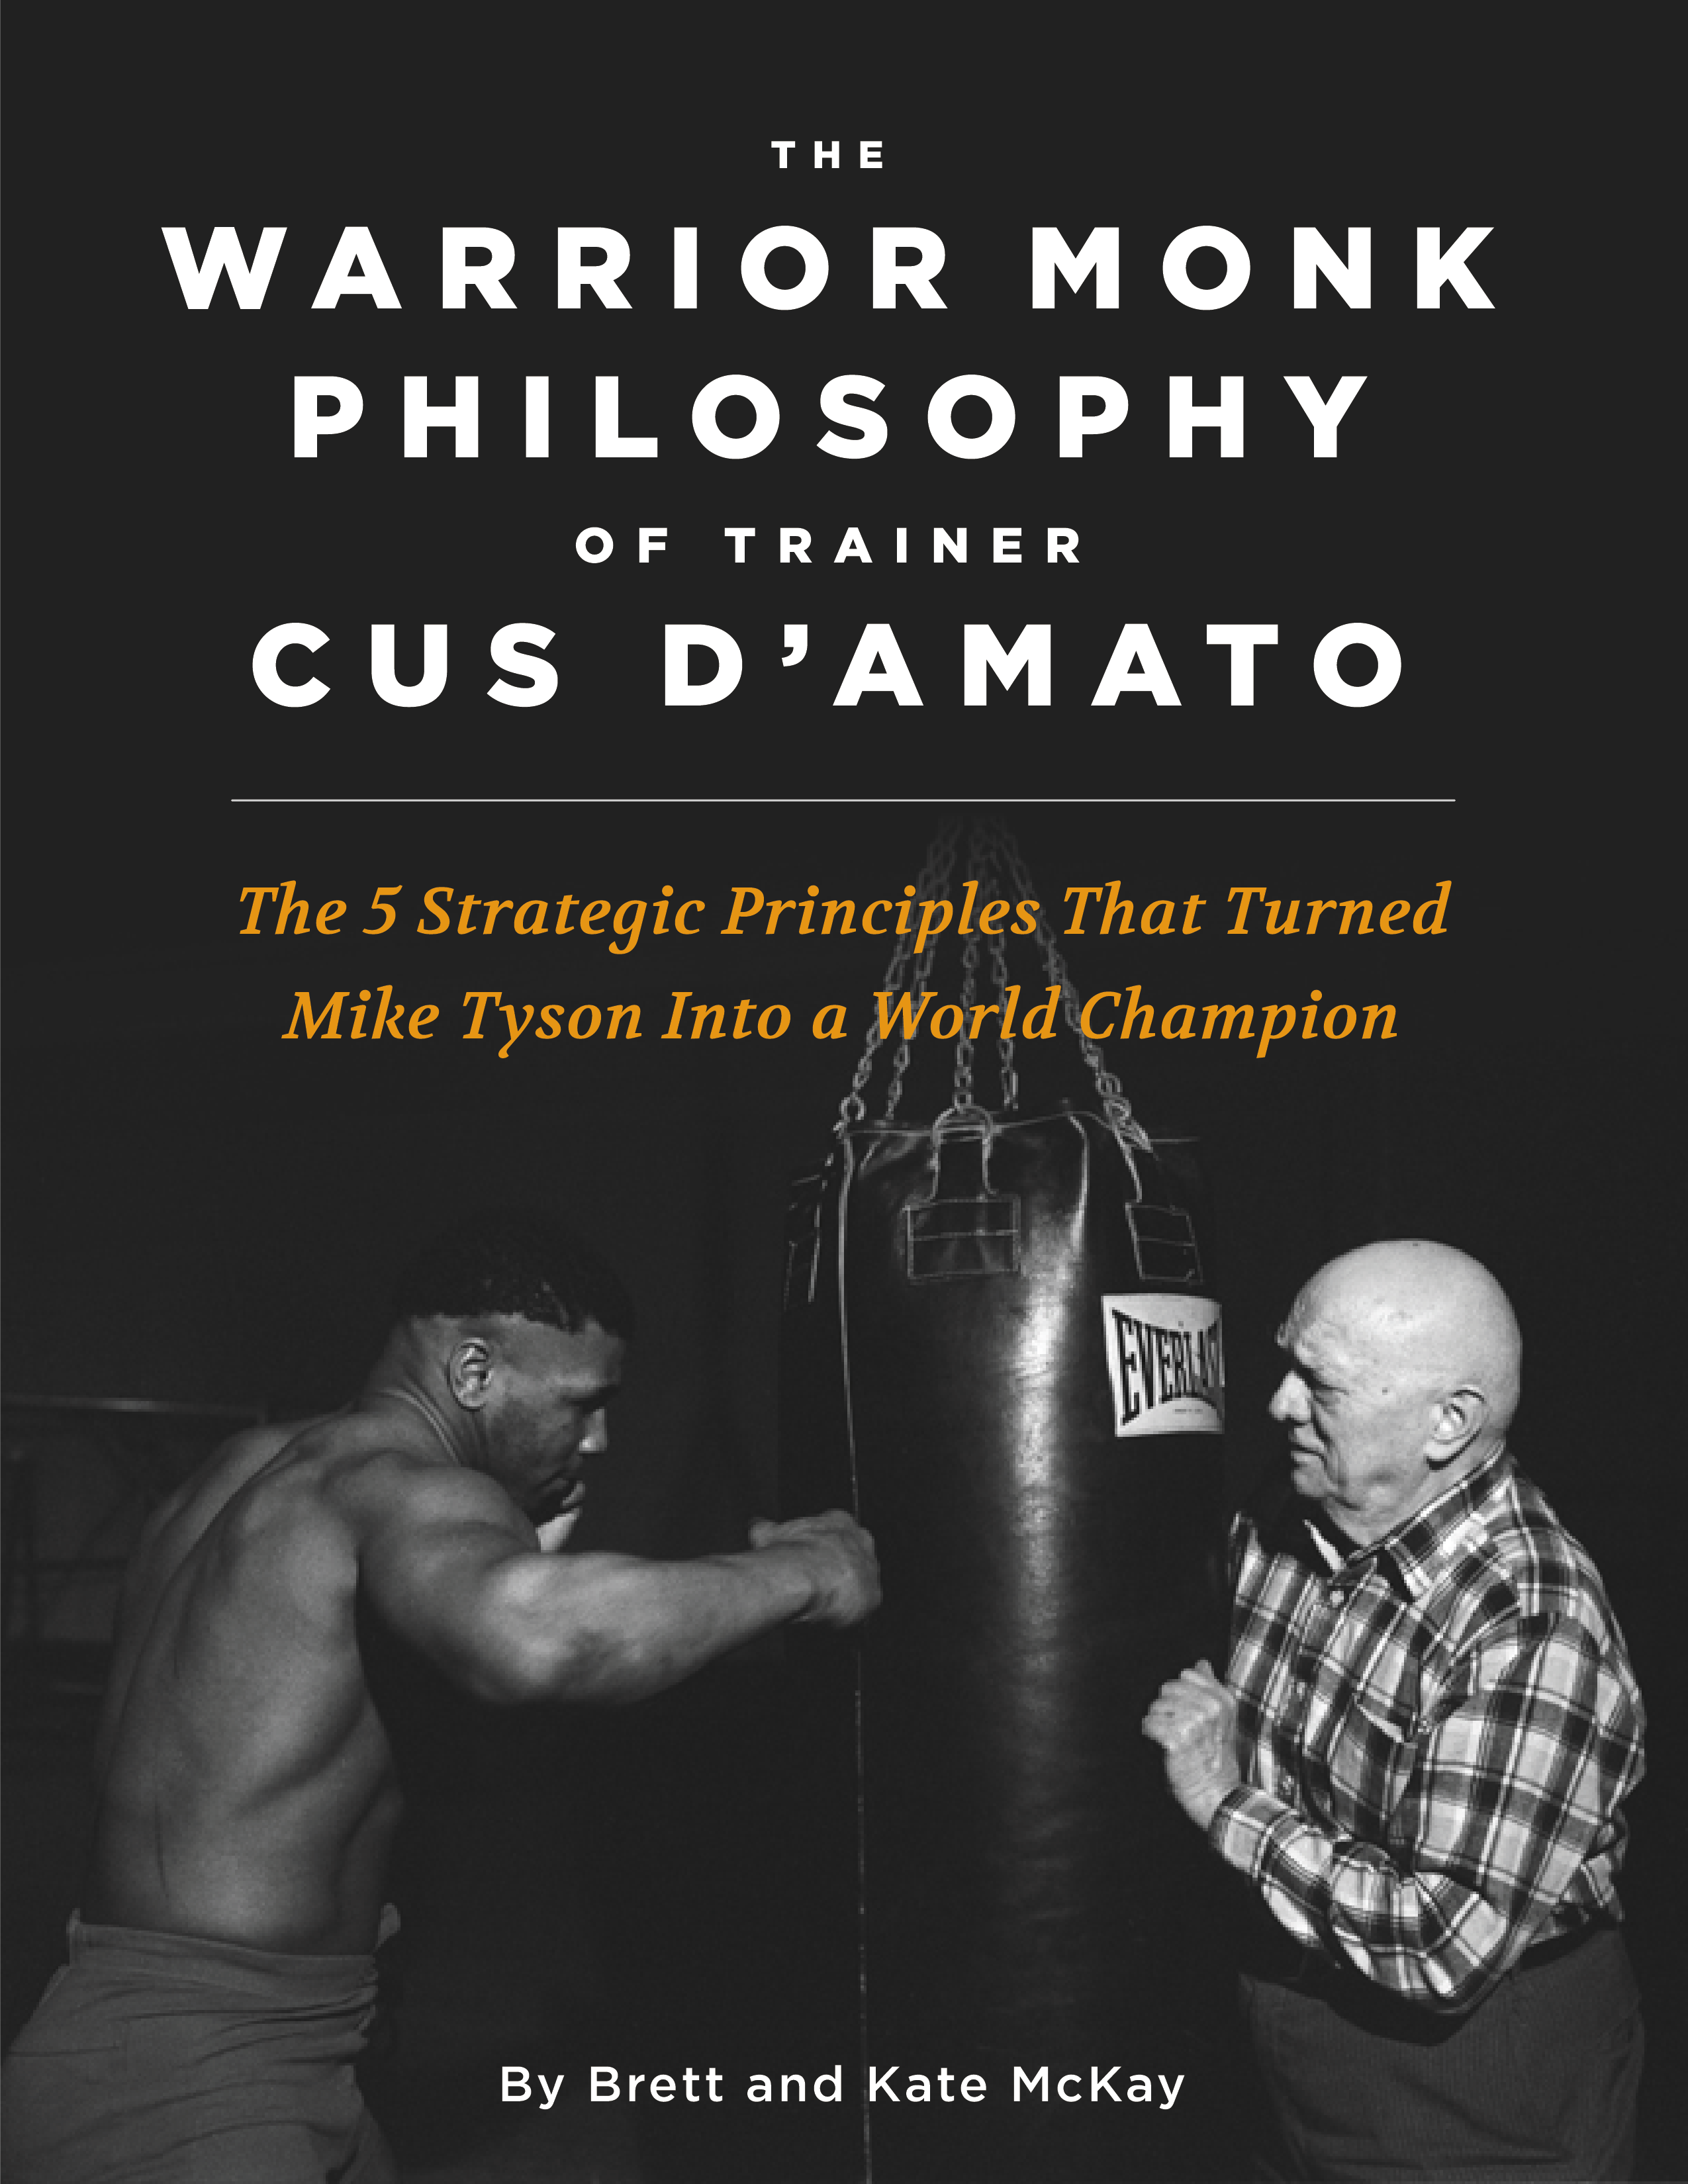 Book cover of The Warrior Monk Philosophy of Trainer Cus D'Amato by Brett and kate Mckay.